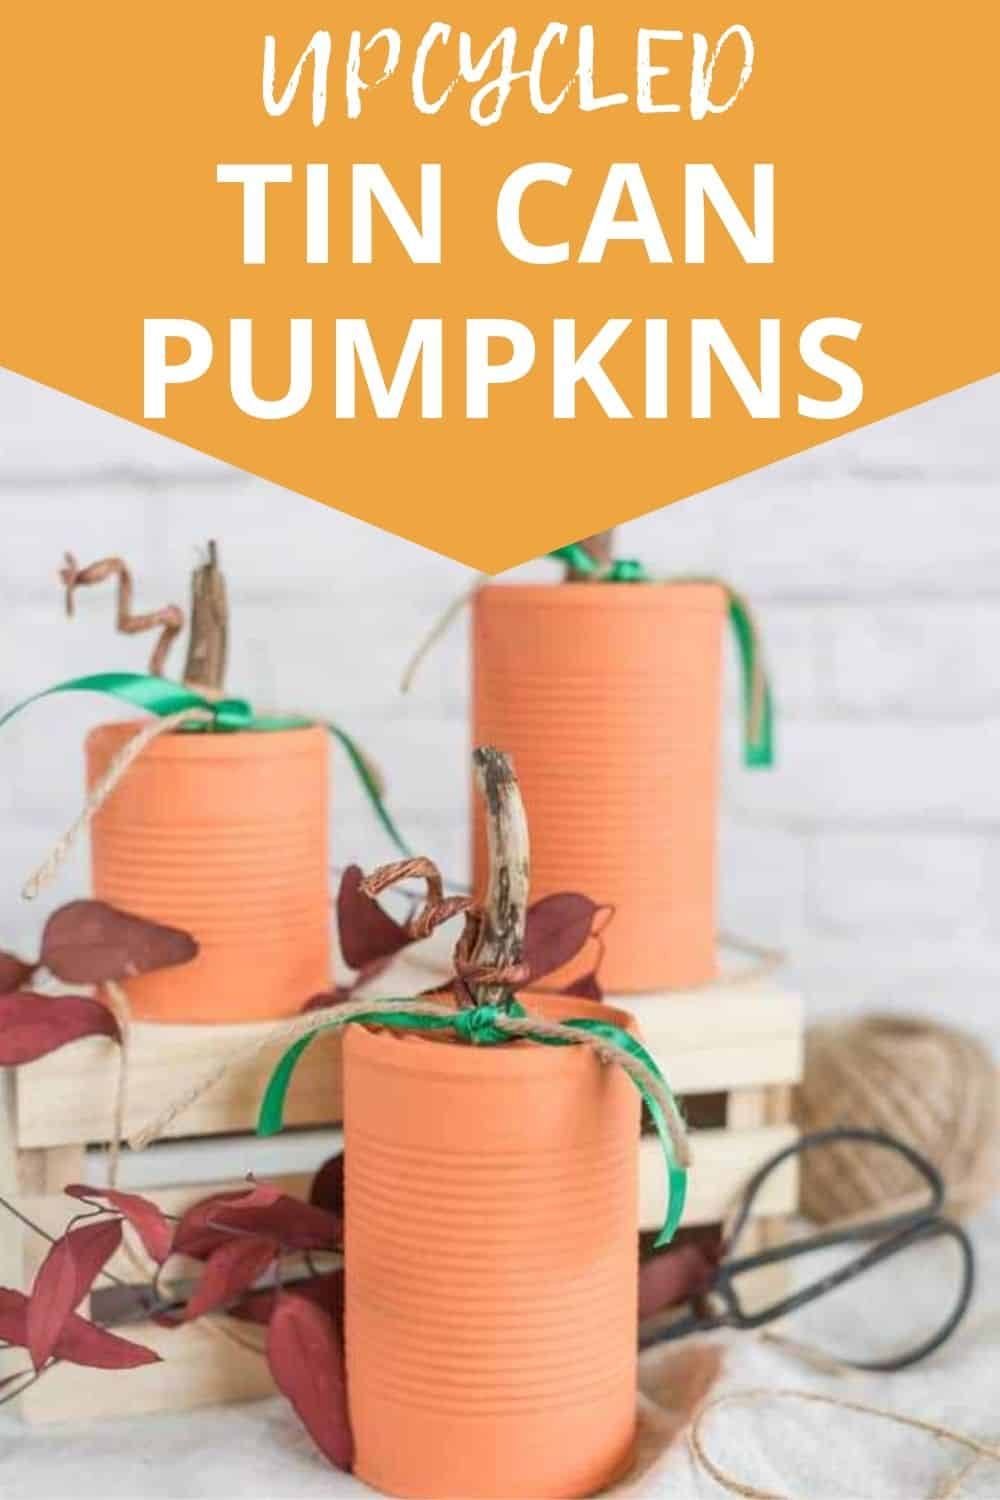 upcycled tin can pumpkins